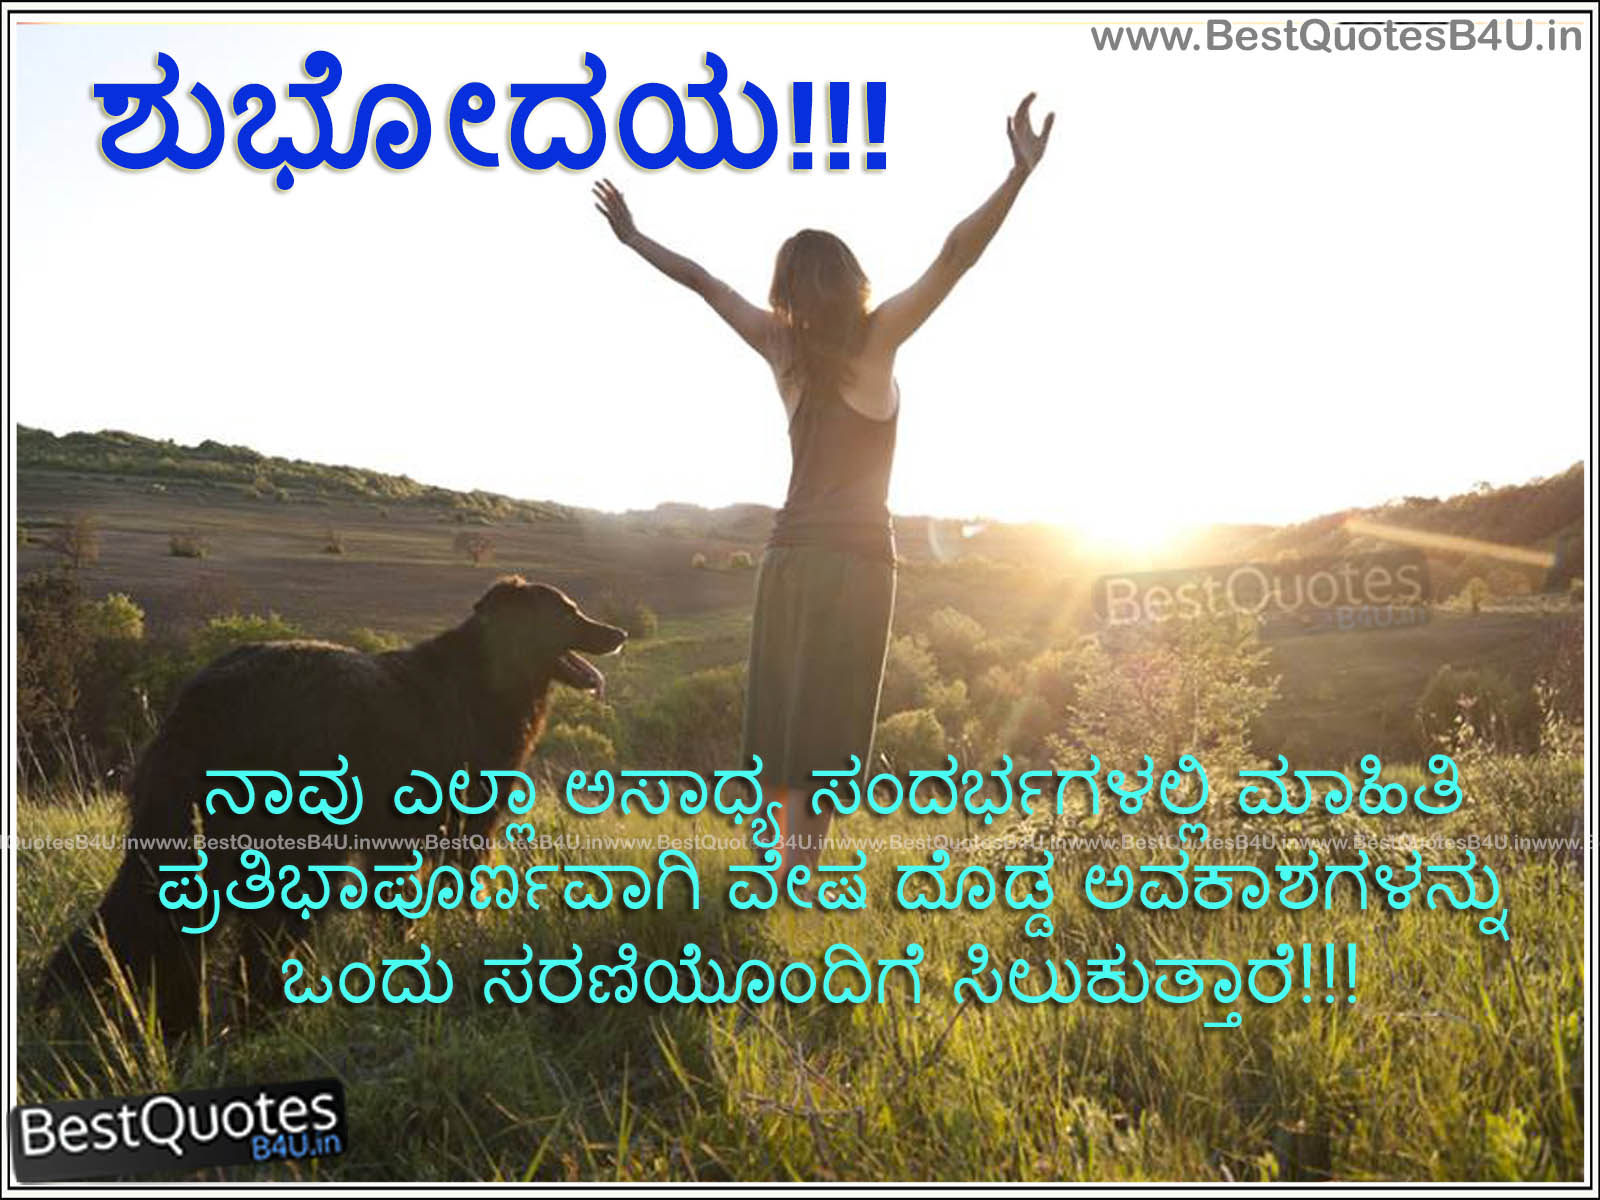 Good Morning Wishes Quotes In Kannada The Emoji